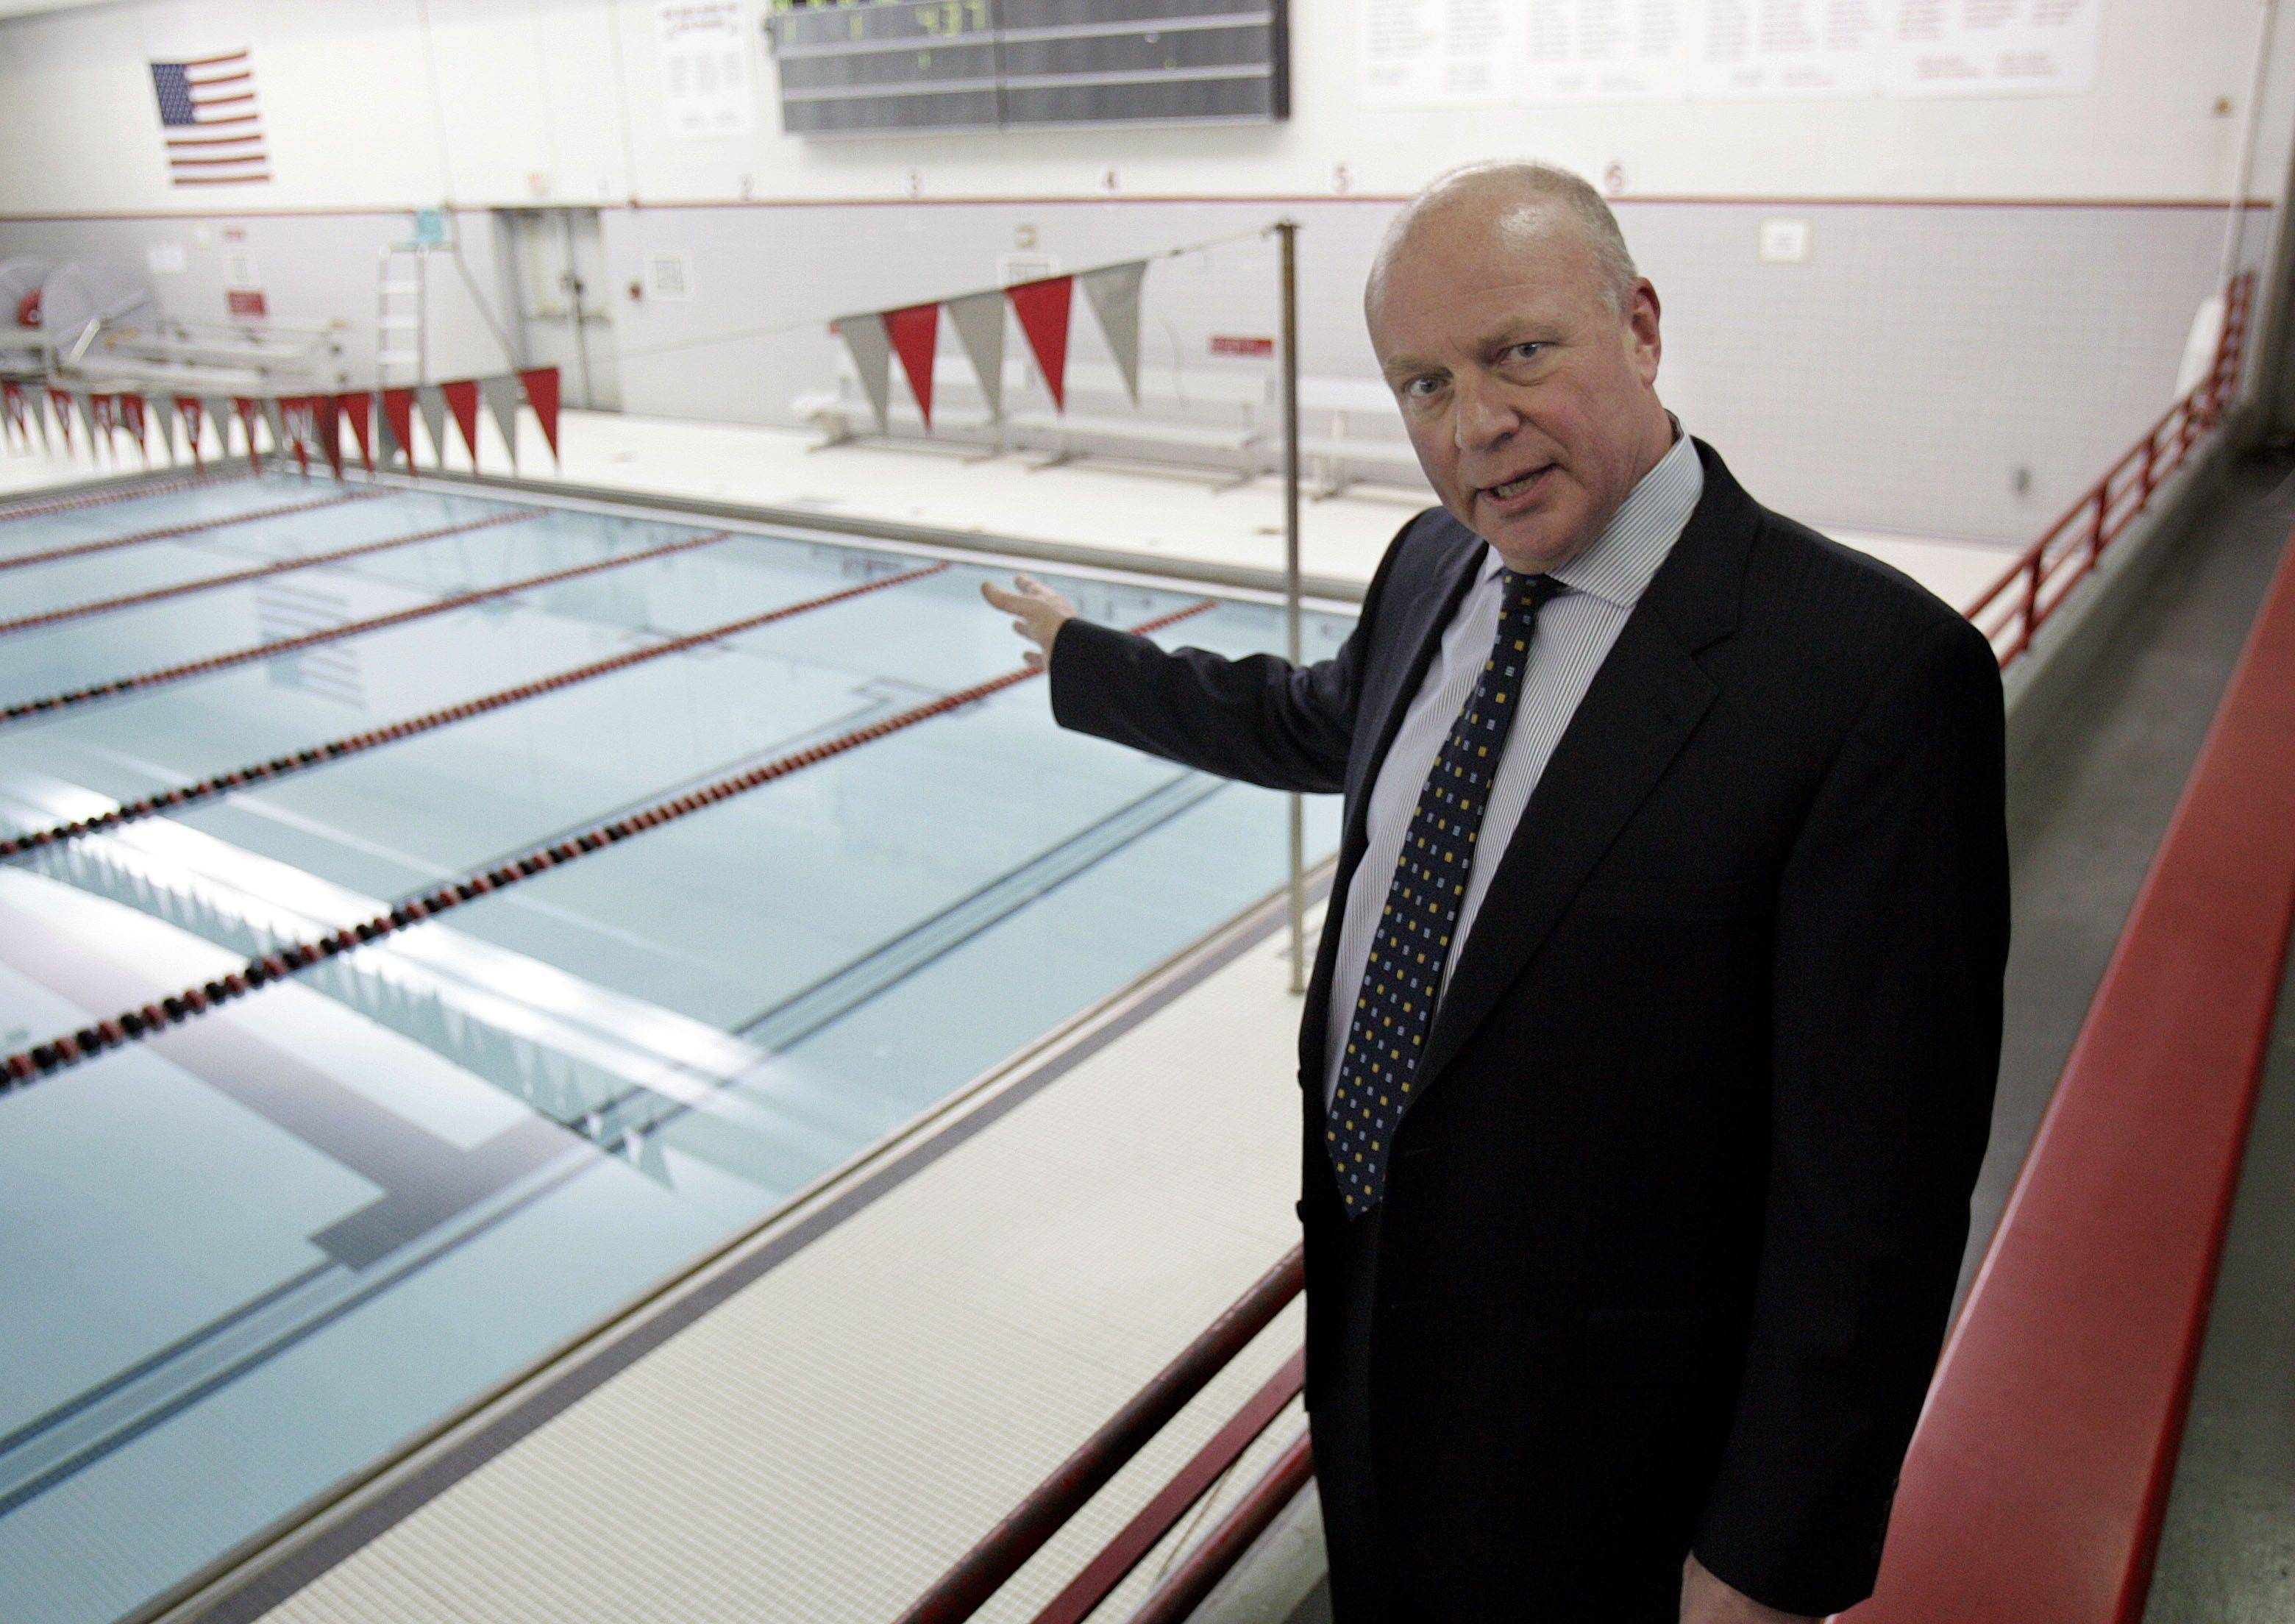 Mundelein High officials unveil wish-list building projects